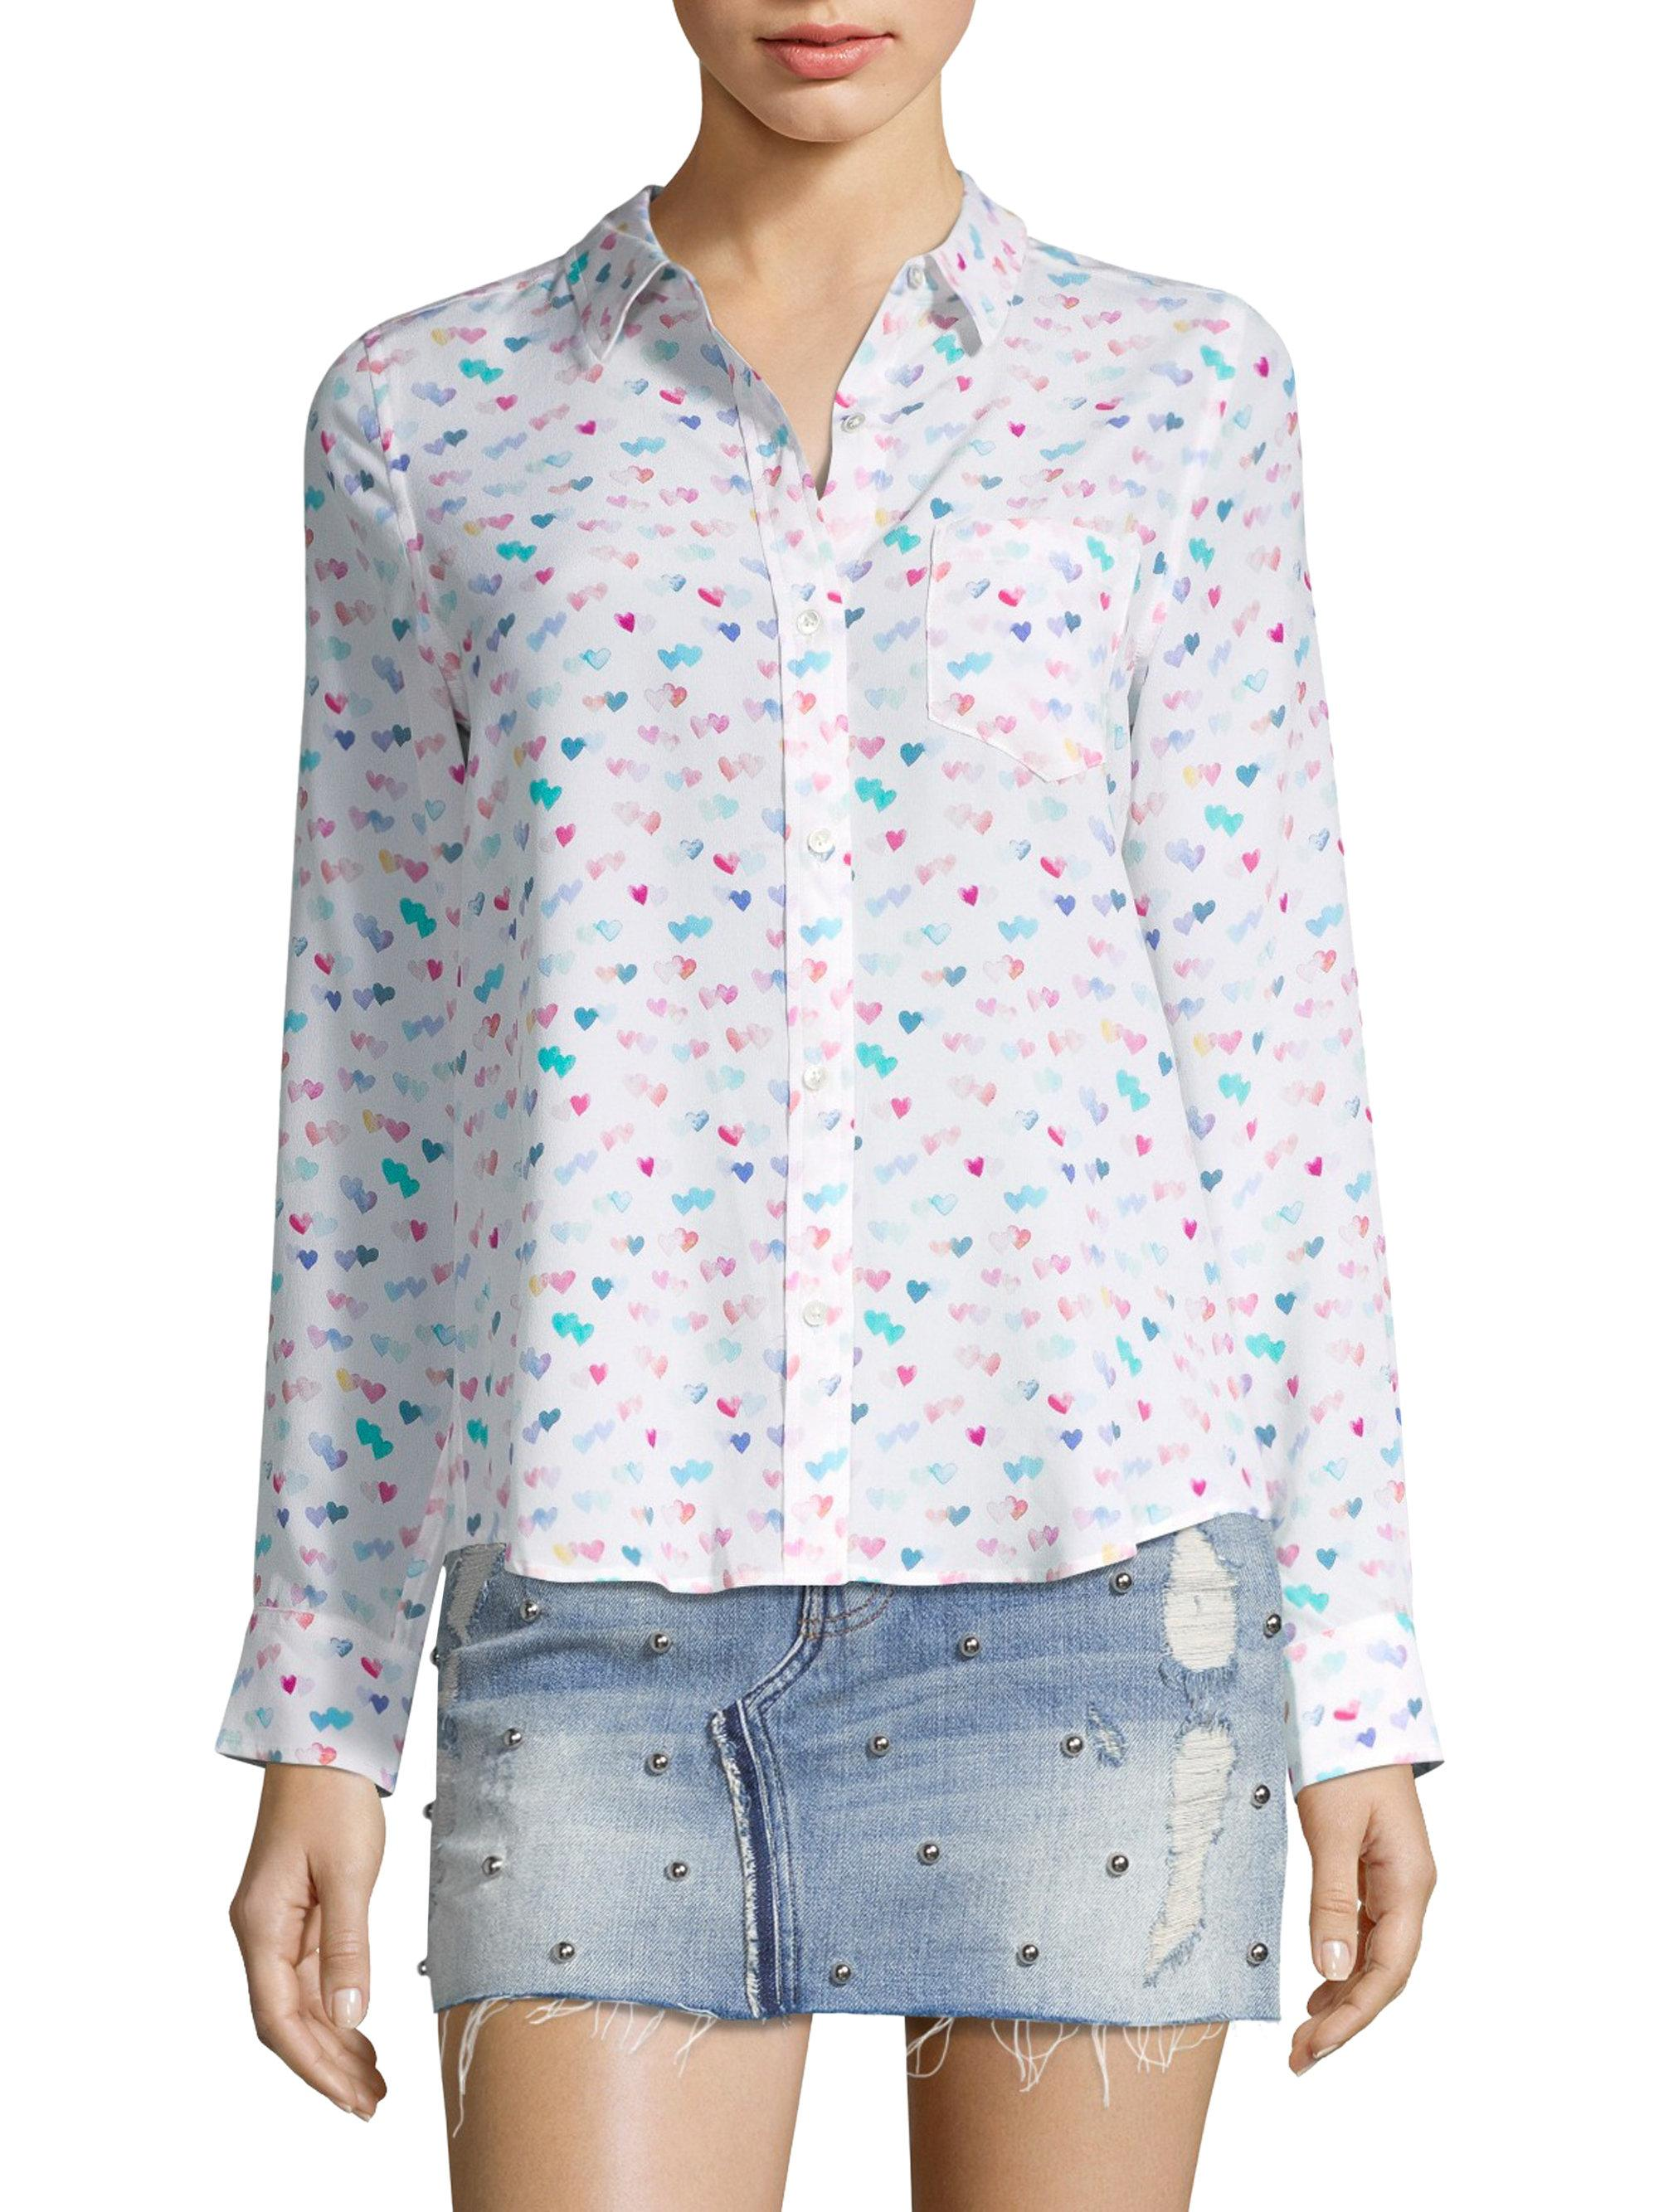 Kate Puff Sleeve Top Emporio Sirenuse Professional Cheap Online Discount Exclusive Cheap Sale Fast Delivery Buy Cheap Looking For fJLPMUL